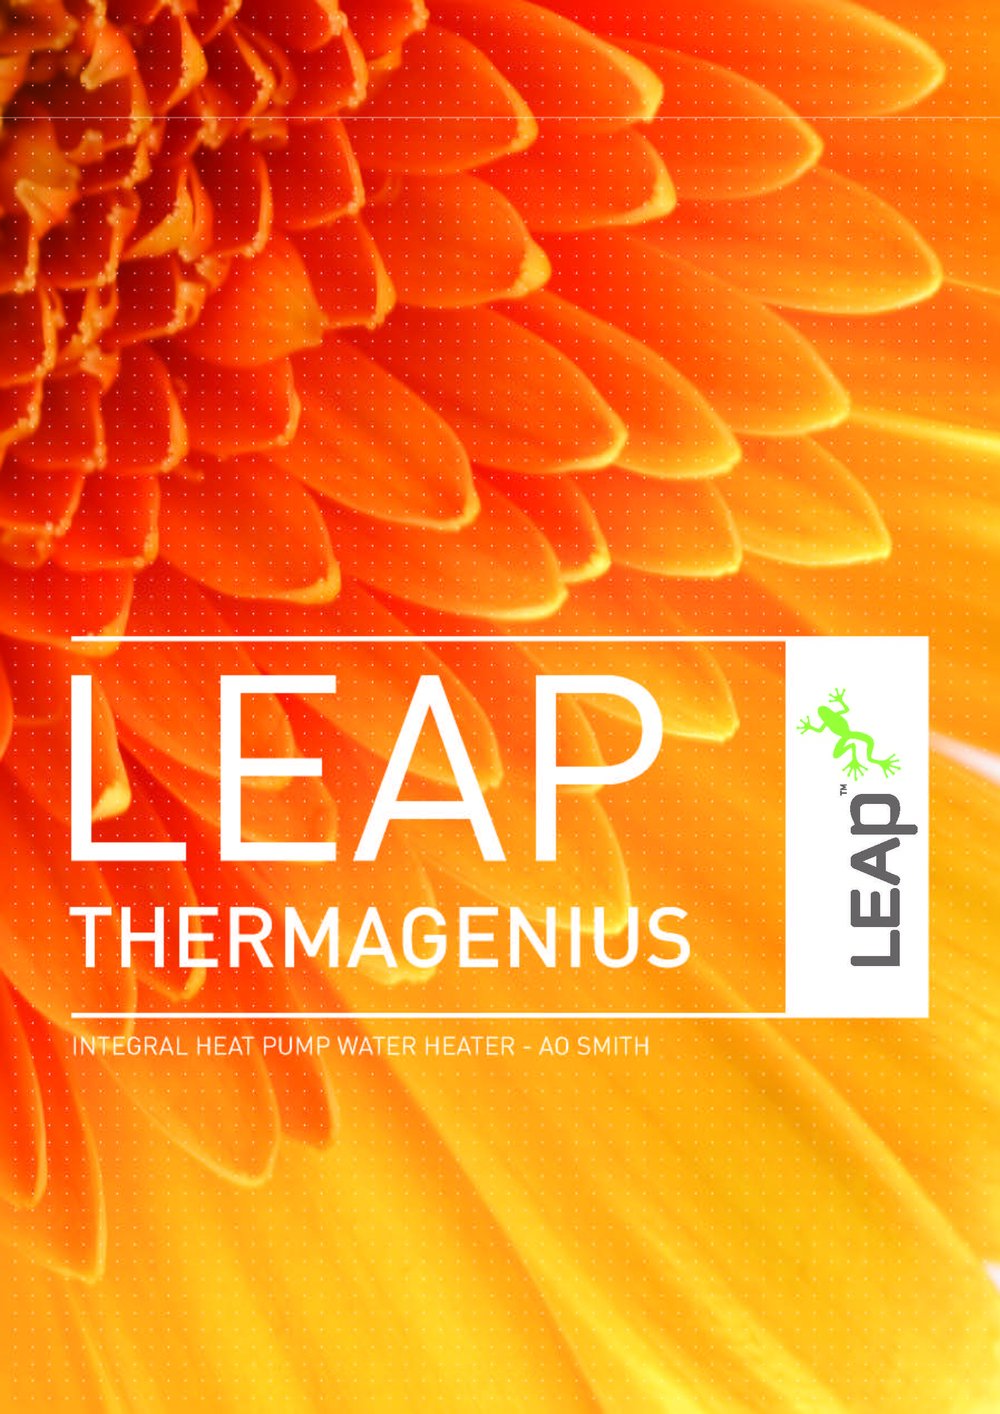 LEAP_THERMAGENIUS AOS Hdr.jpg